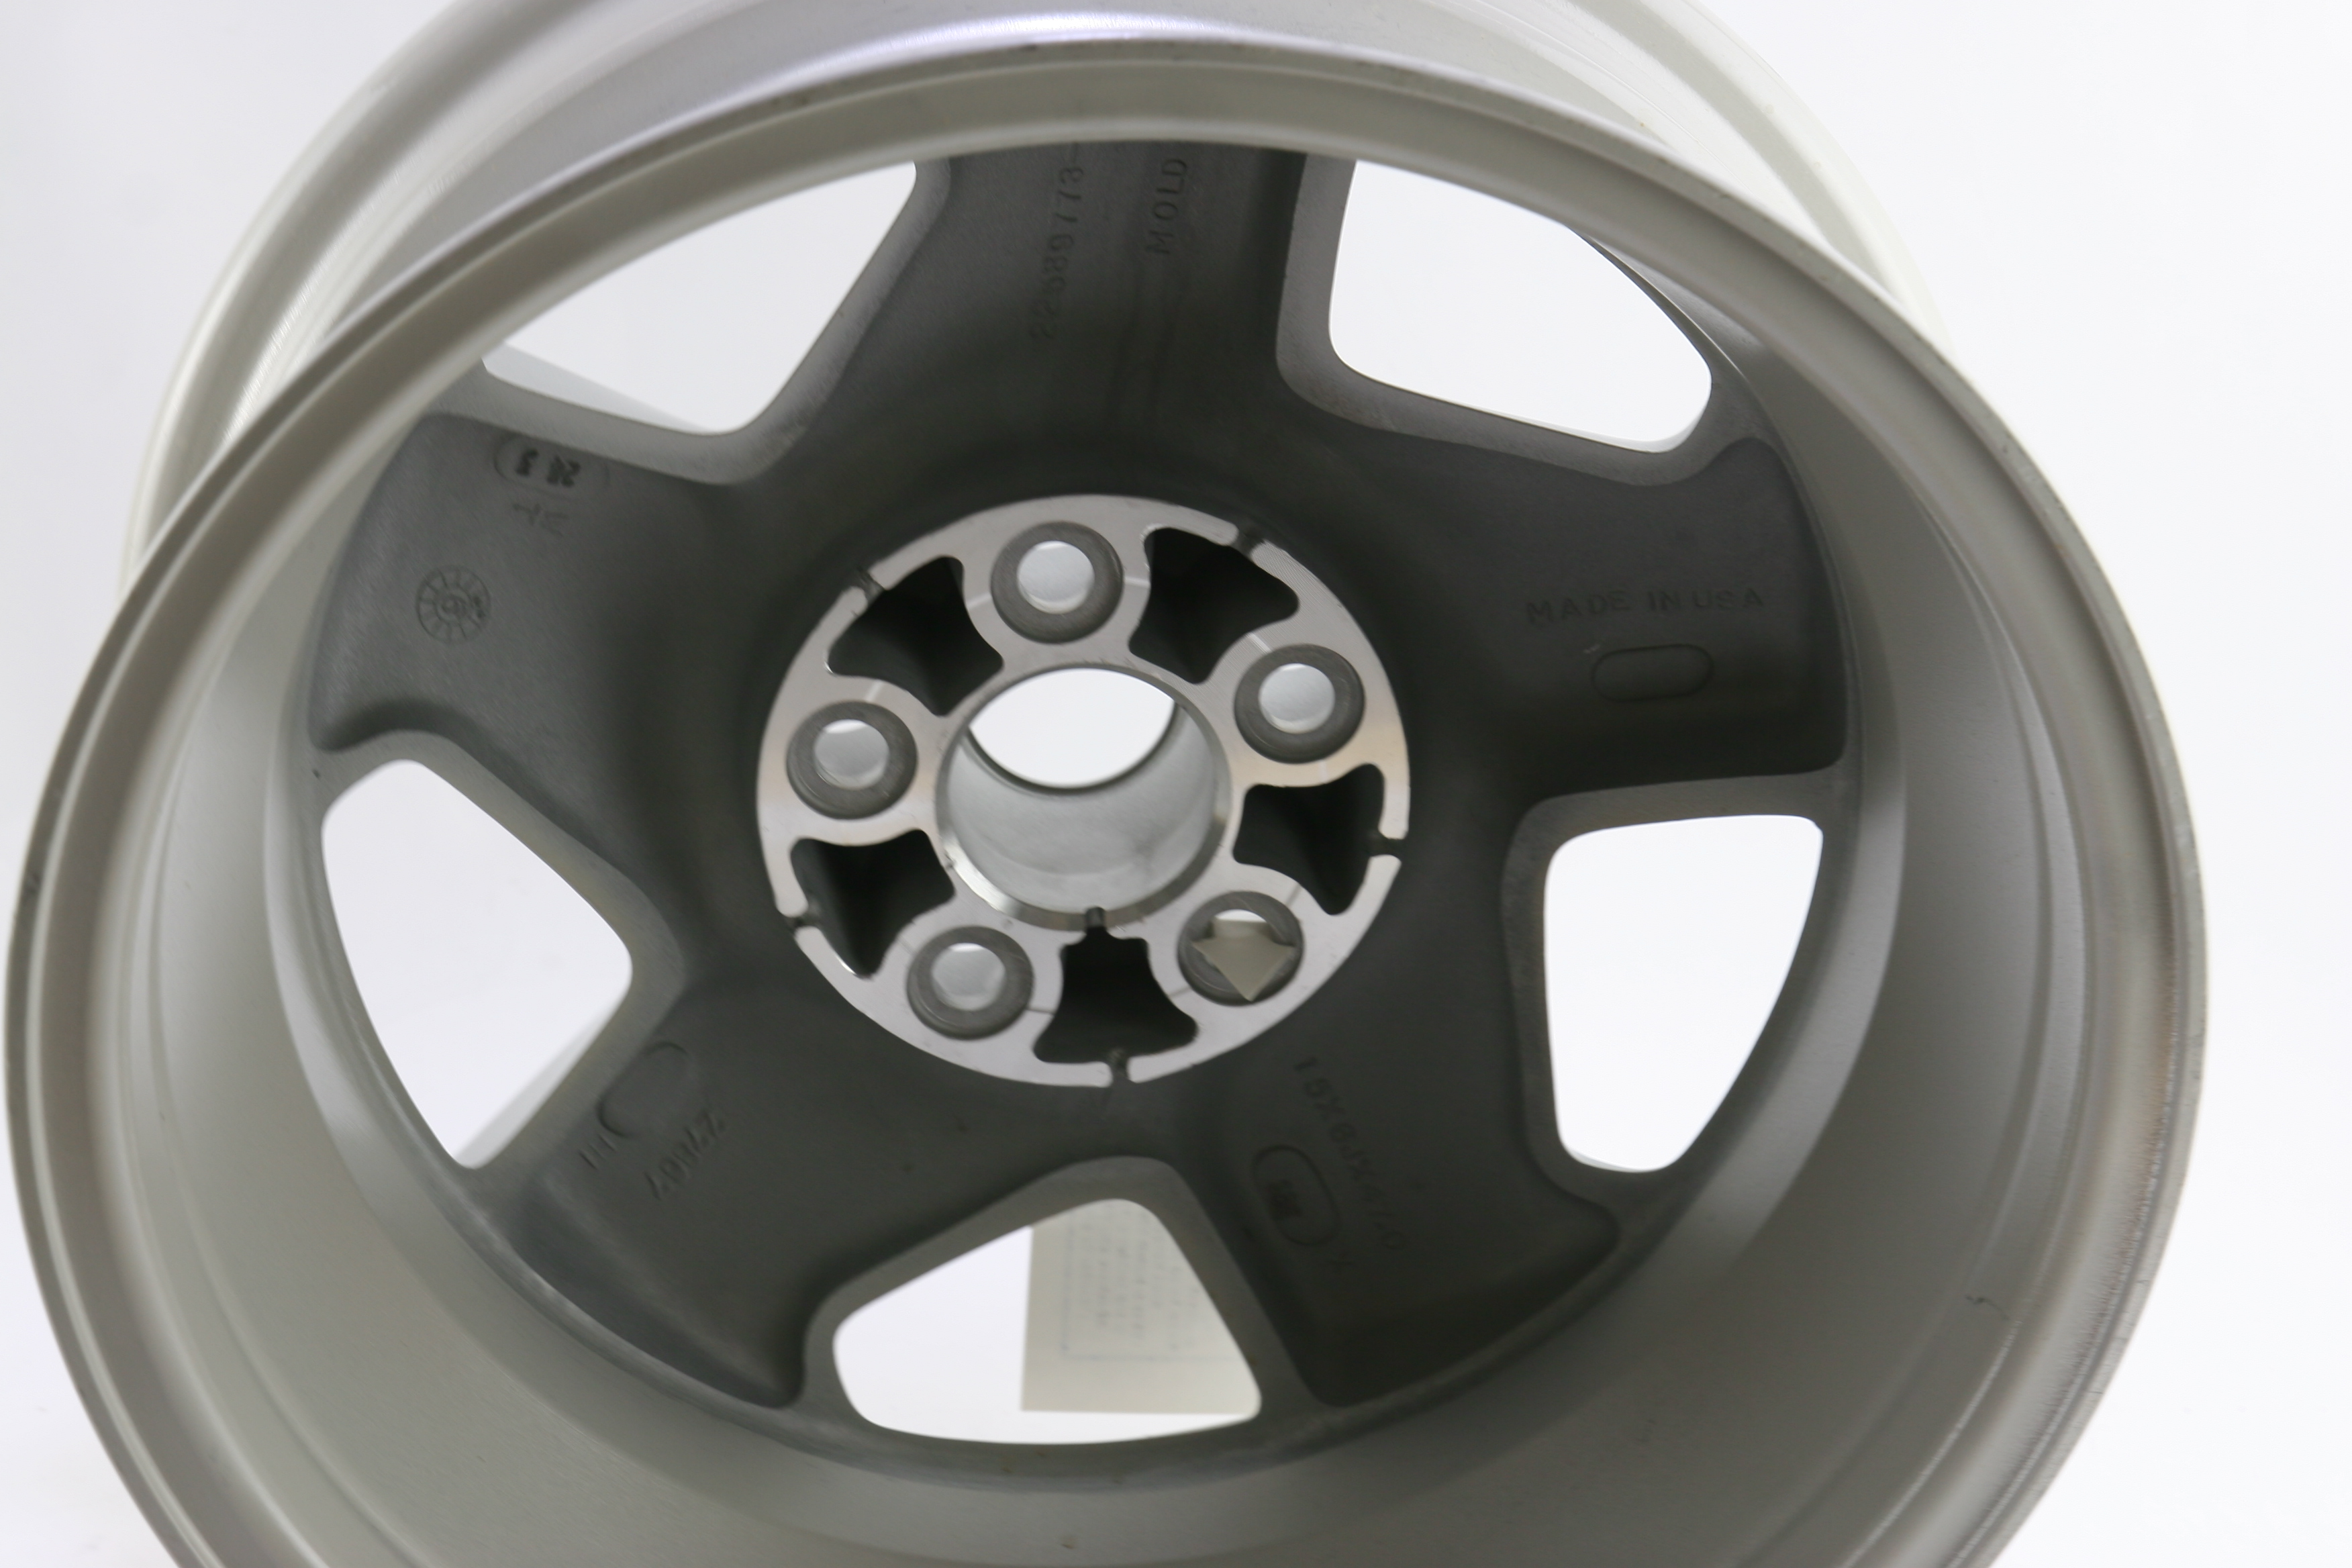 "~ New OEM 12360421 15"" Factory Wheel 95-99 Pontiac Sunfire Fast Free Shipping - image 3"